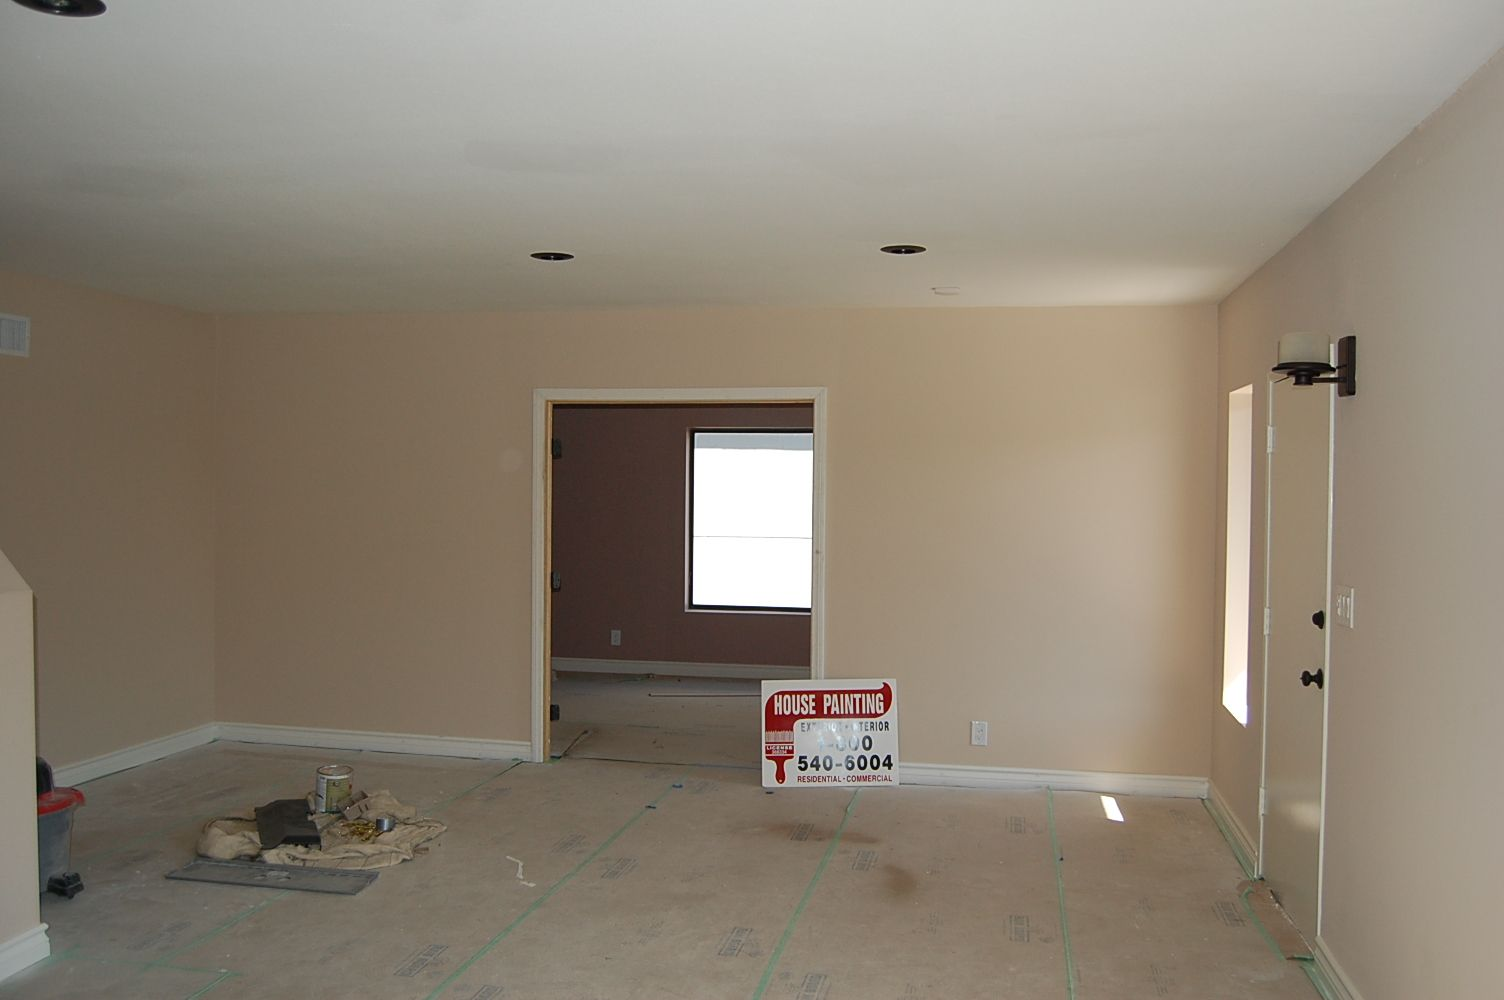 Master bedroom interior painting looking for professional house painting in stamford ct